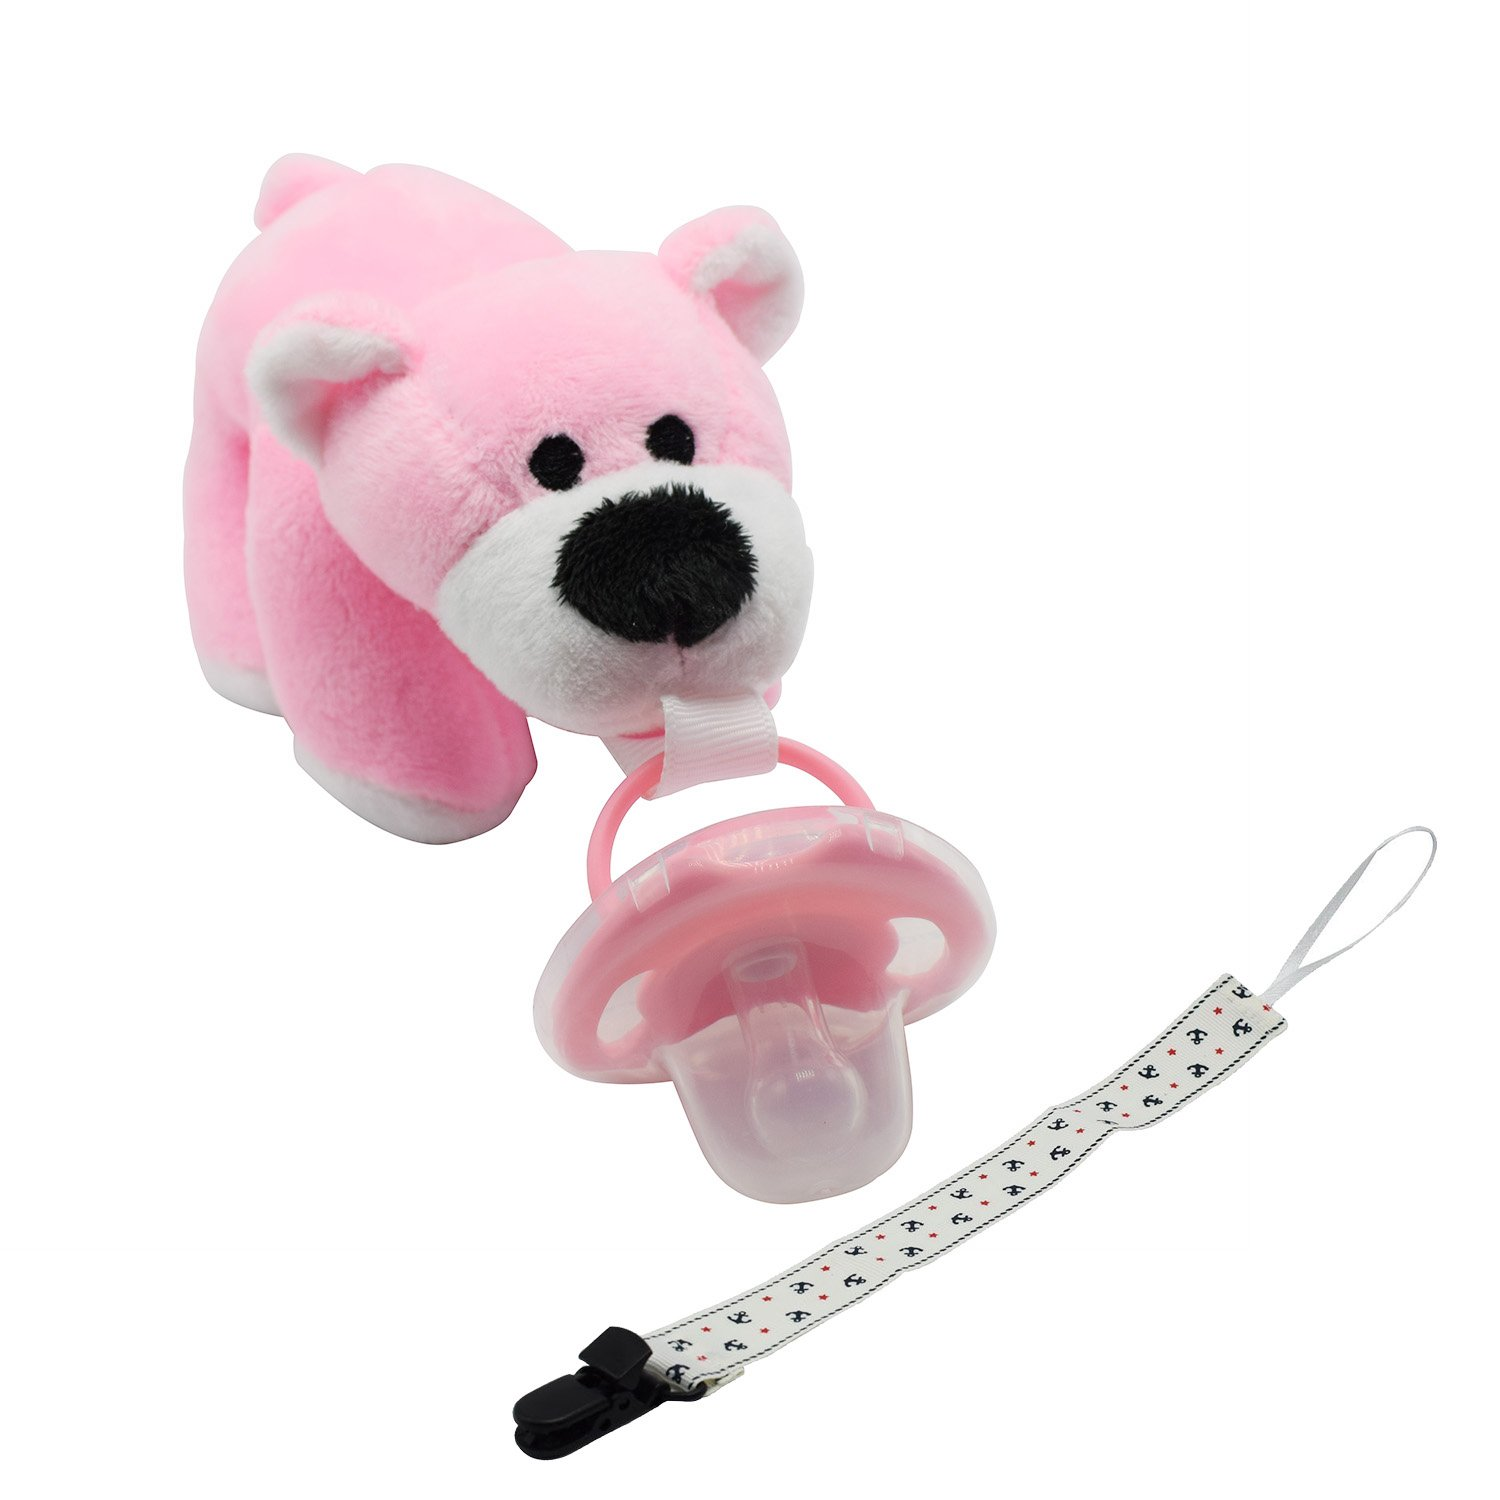 Tinabless Infant Bear Pacifier Holder Stuffed Animal Toy with Pacifier Clip by Tinabless   B01J0TITHM